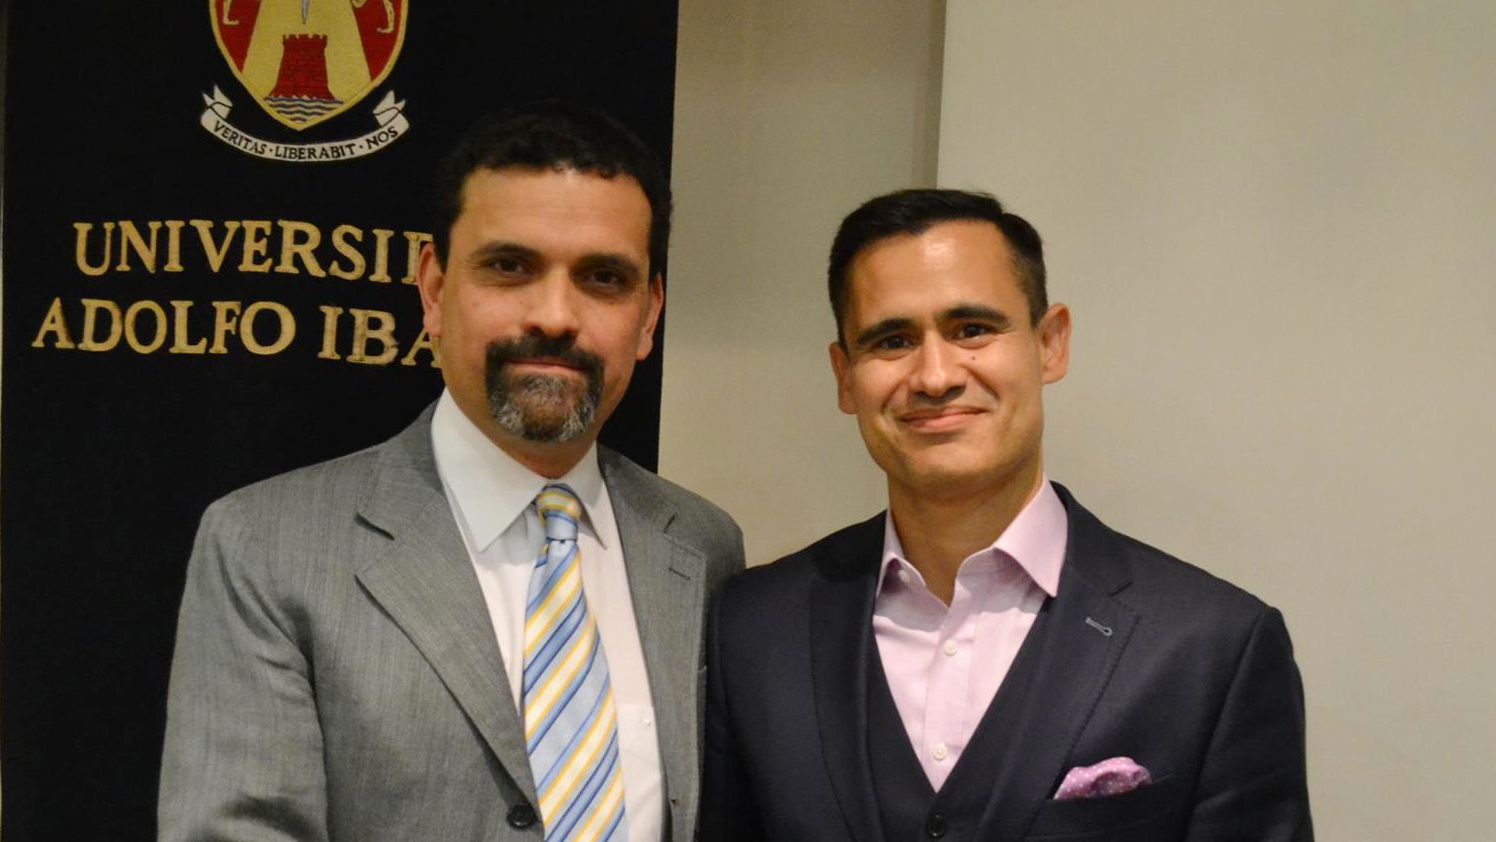 Professors Sergio Gamonal C. (left) and César Rosado Marzán and co-authored Principled Labor Law: U.S. Labor Law through a Latin American Method (Oxford University Press 2019).